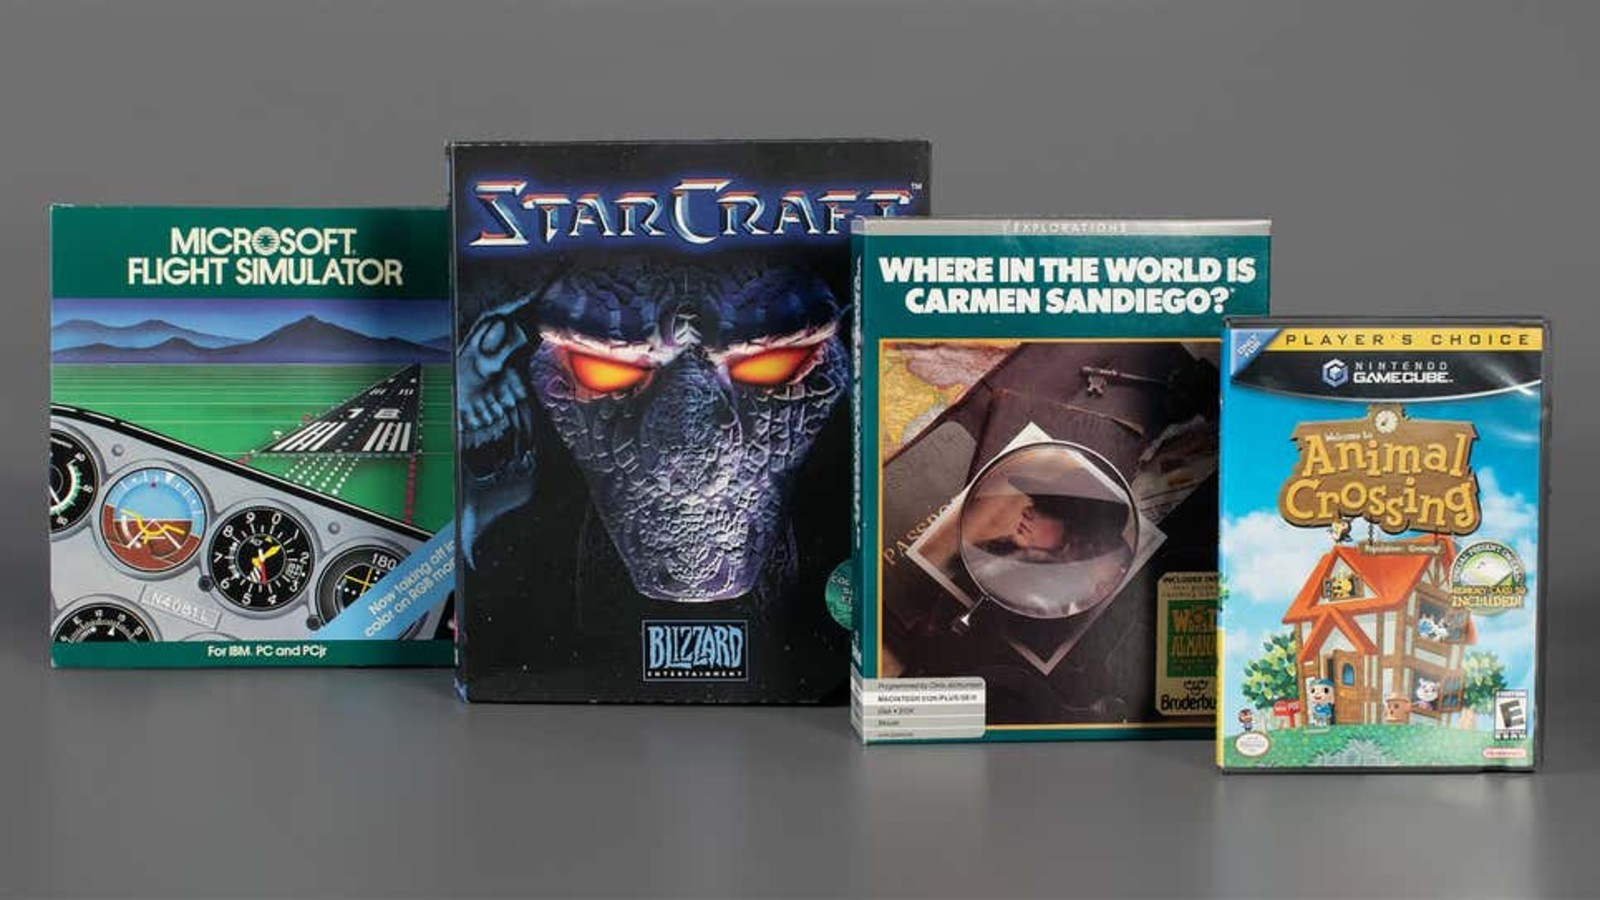 'Animal Crossing' and 'StarCraft' join the Video Game Hall of Fame | Engadget